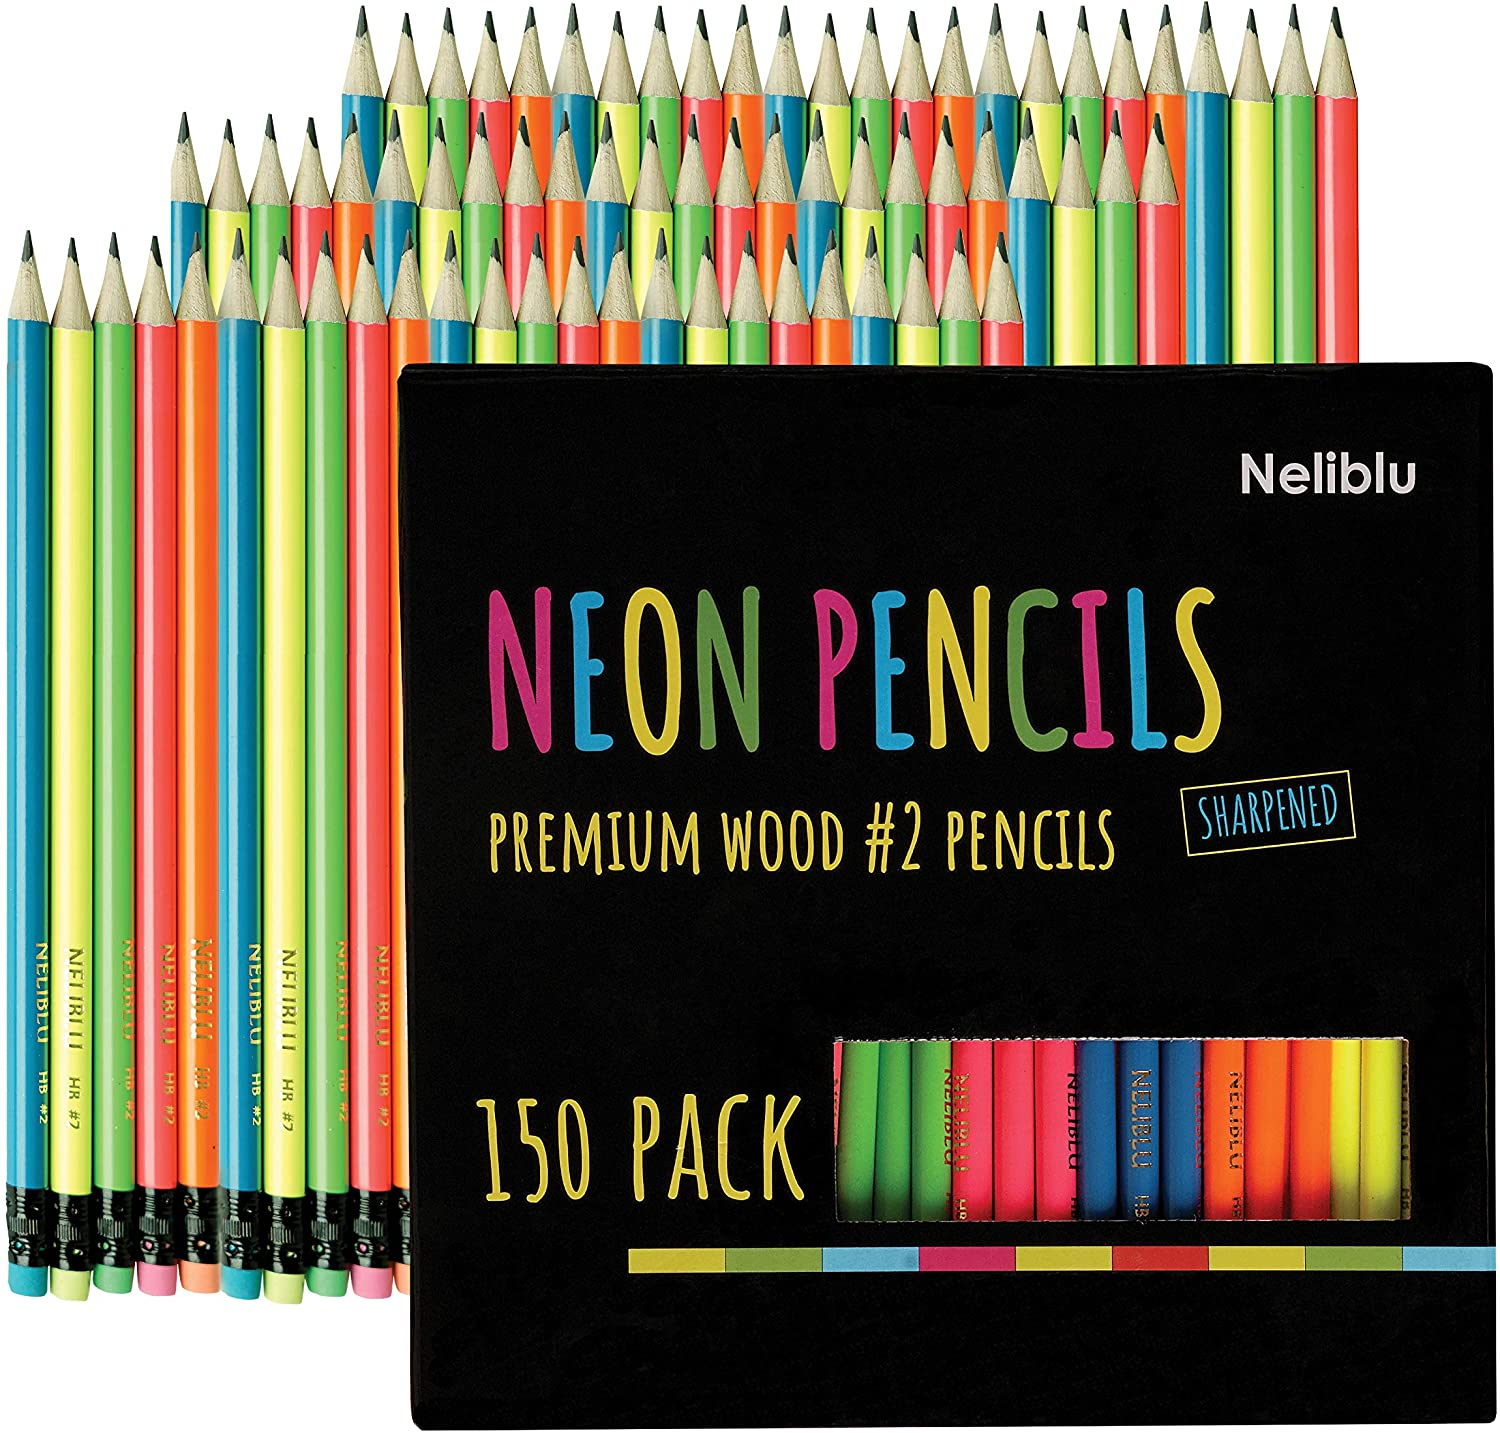 Premium Quality Pencils In Bulk 150 Neon #2 Sharpened Wood Pencils for Kids and Adults